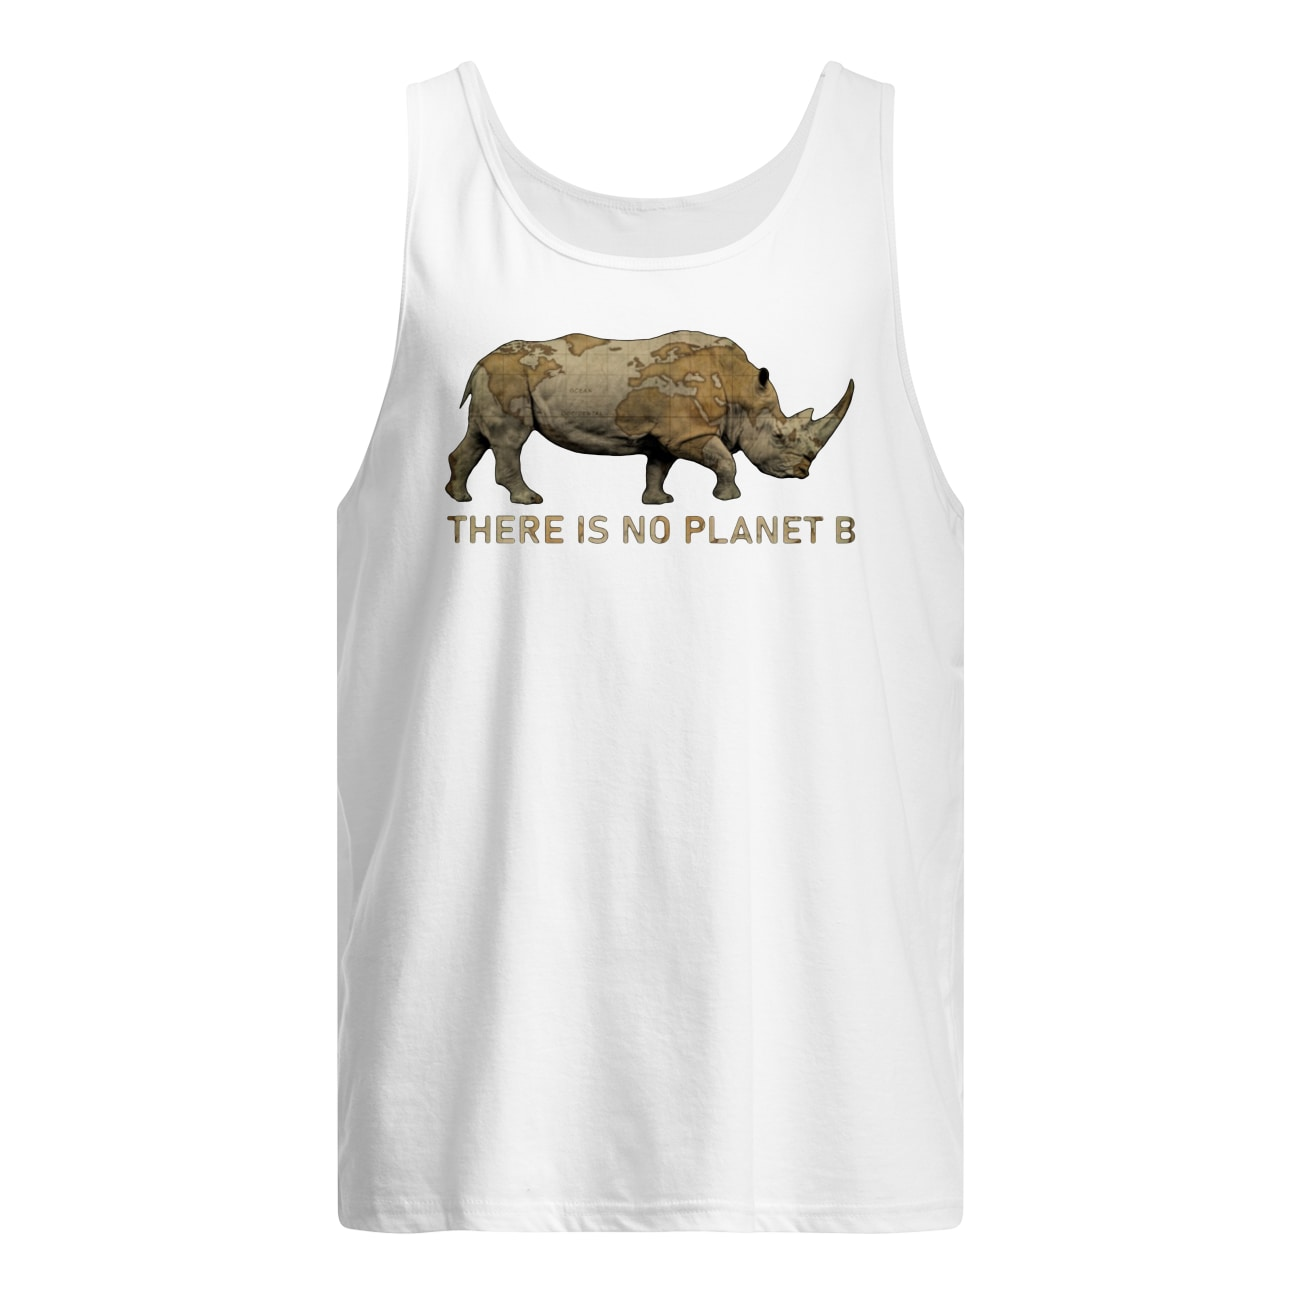 Rhino there is no planet b tank top